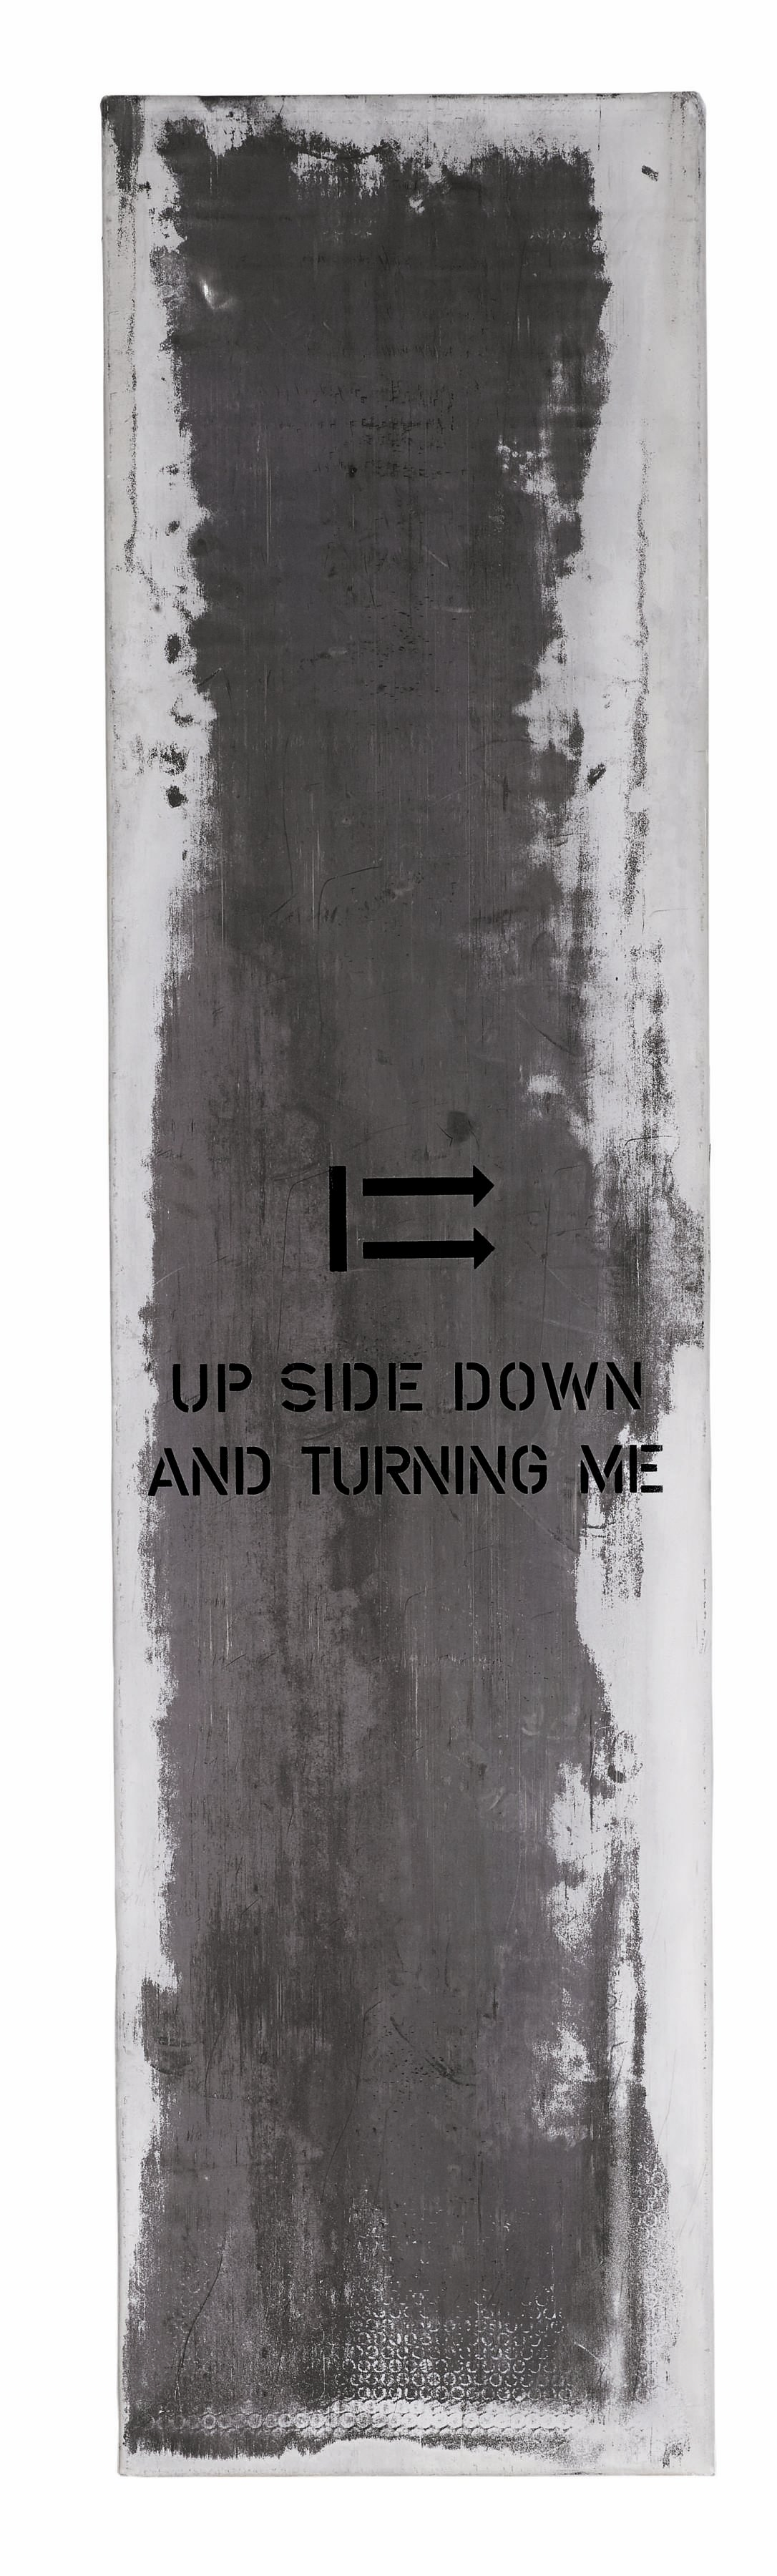 Upside down and turning me